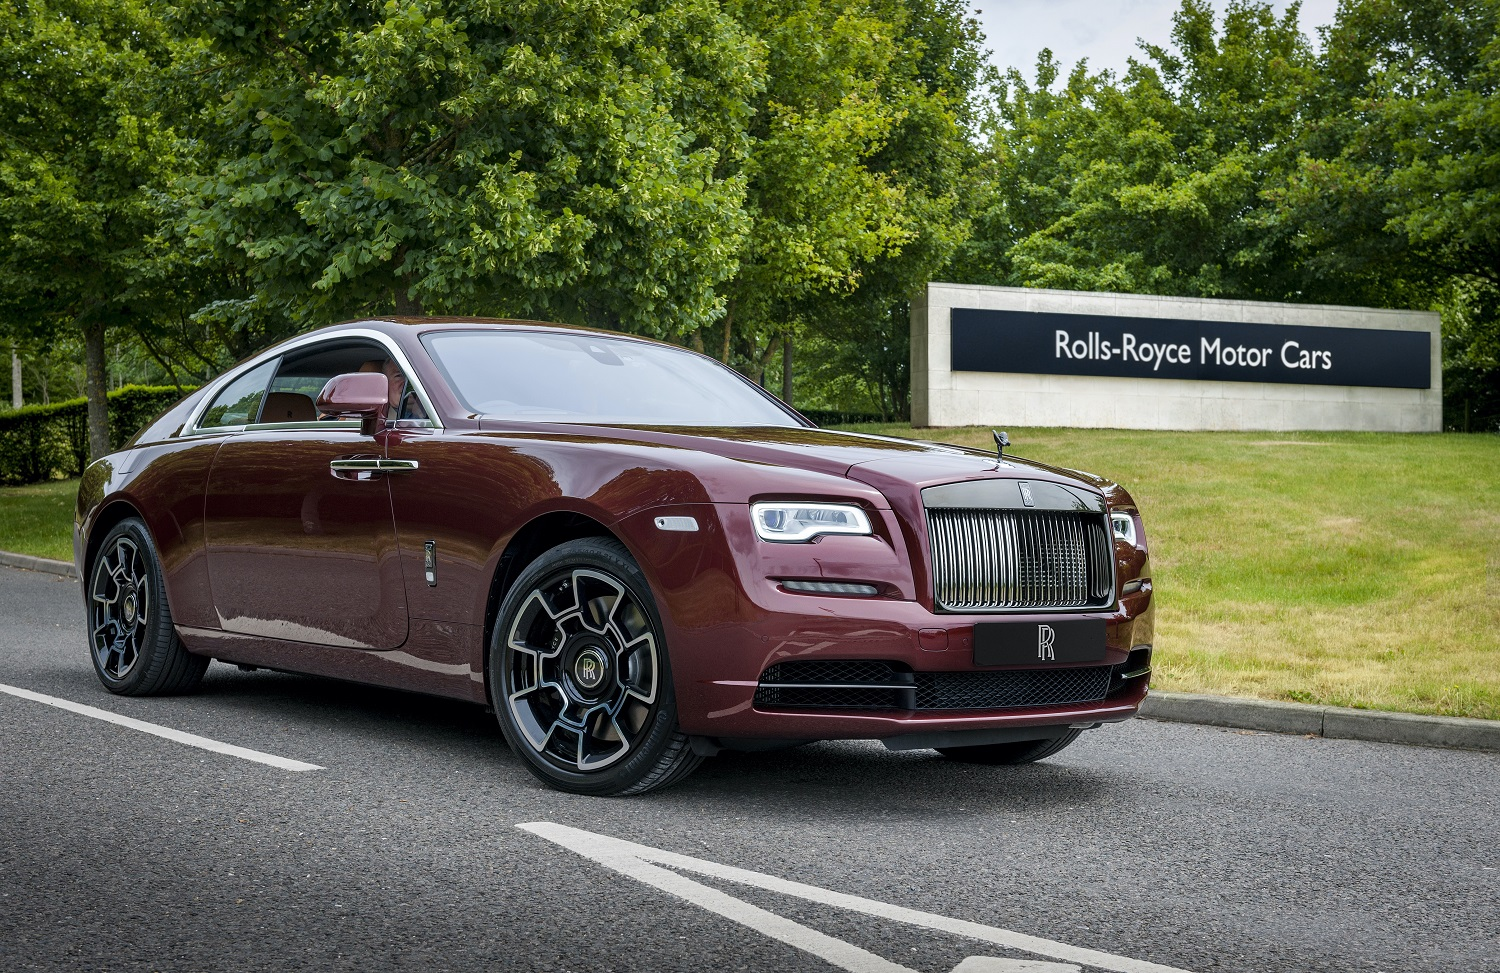 Client Handover Ceremonies Resume At Reopened Home Of Rolls-Royce